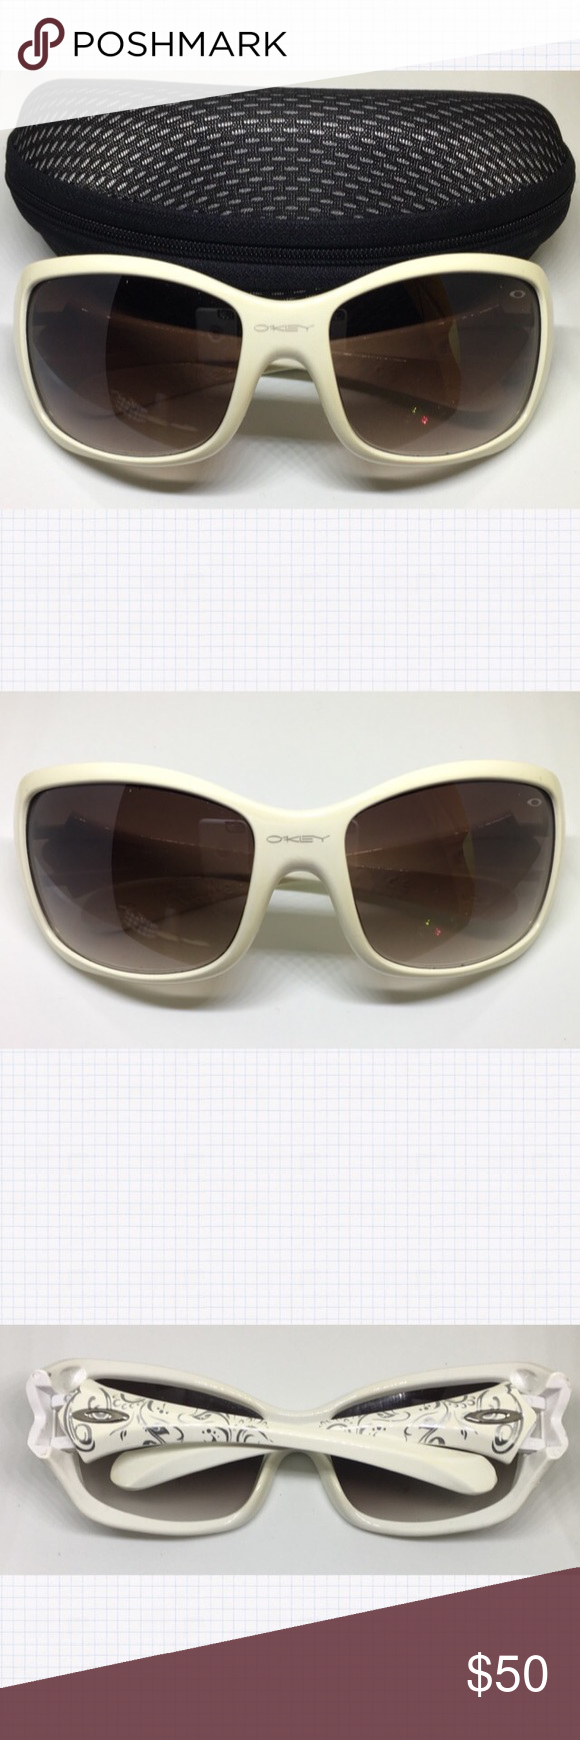 6c710cf355e3f Oakley Ravishing Polarized Sunglasses W Case 100% Authentic Pre-Owned White  Polarized Women s Sunglasses-Great Condition with a couple of very very  small ...